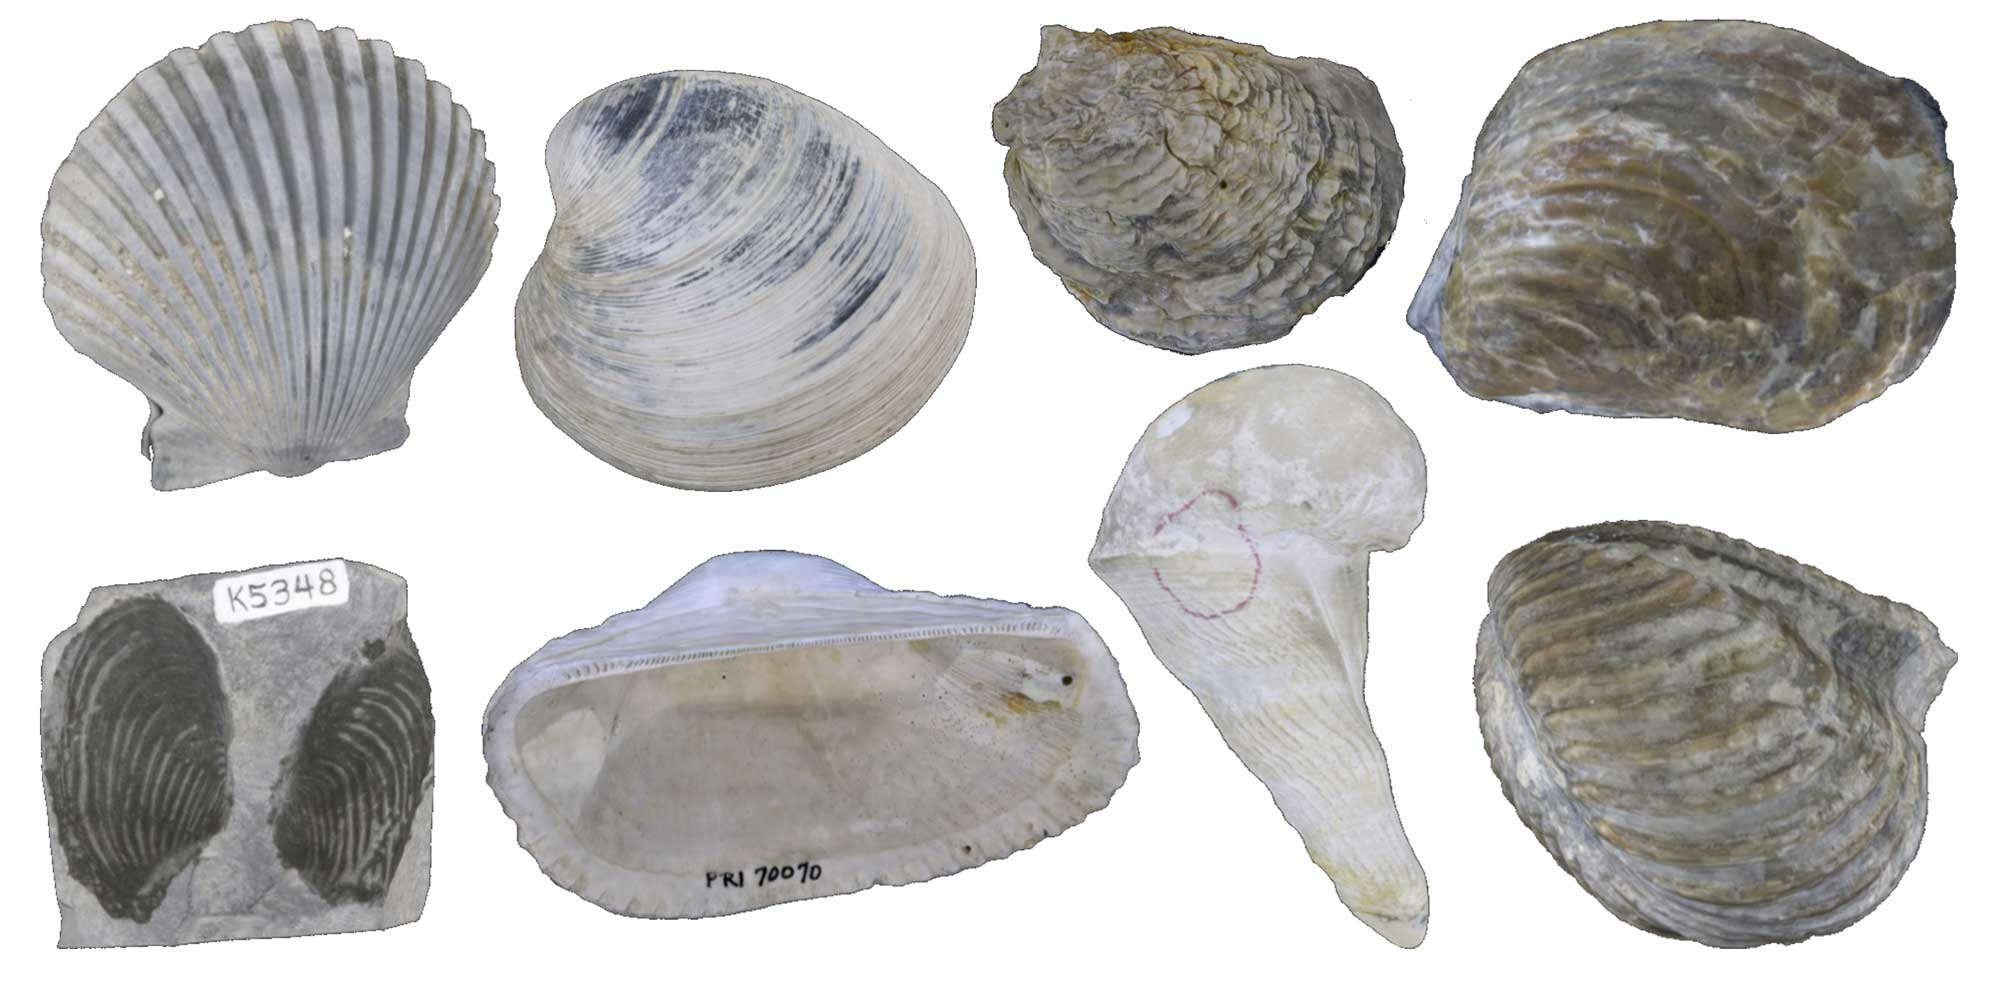 Images of bivalve fossils.